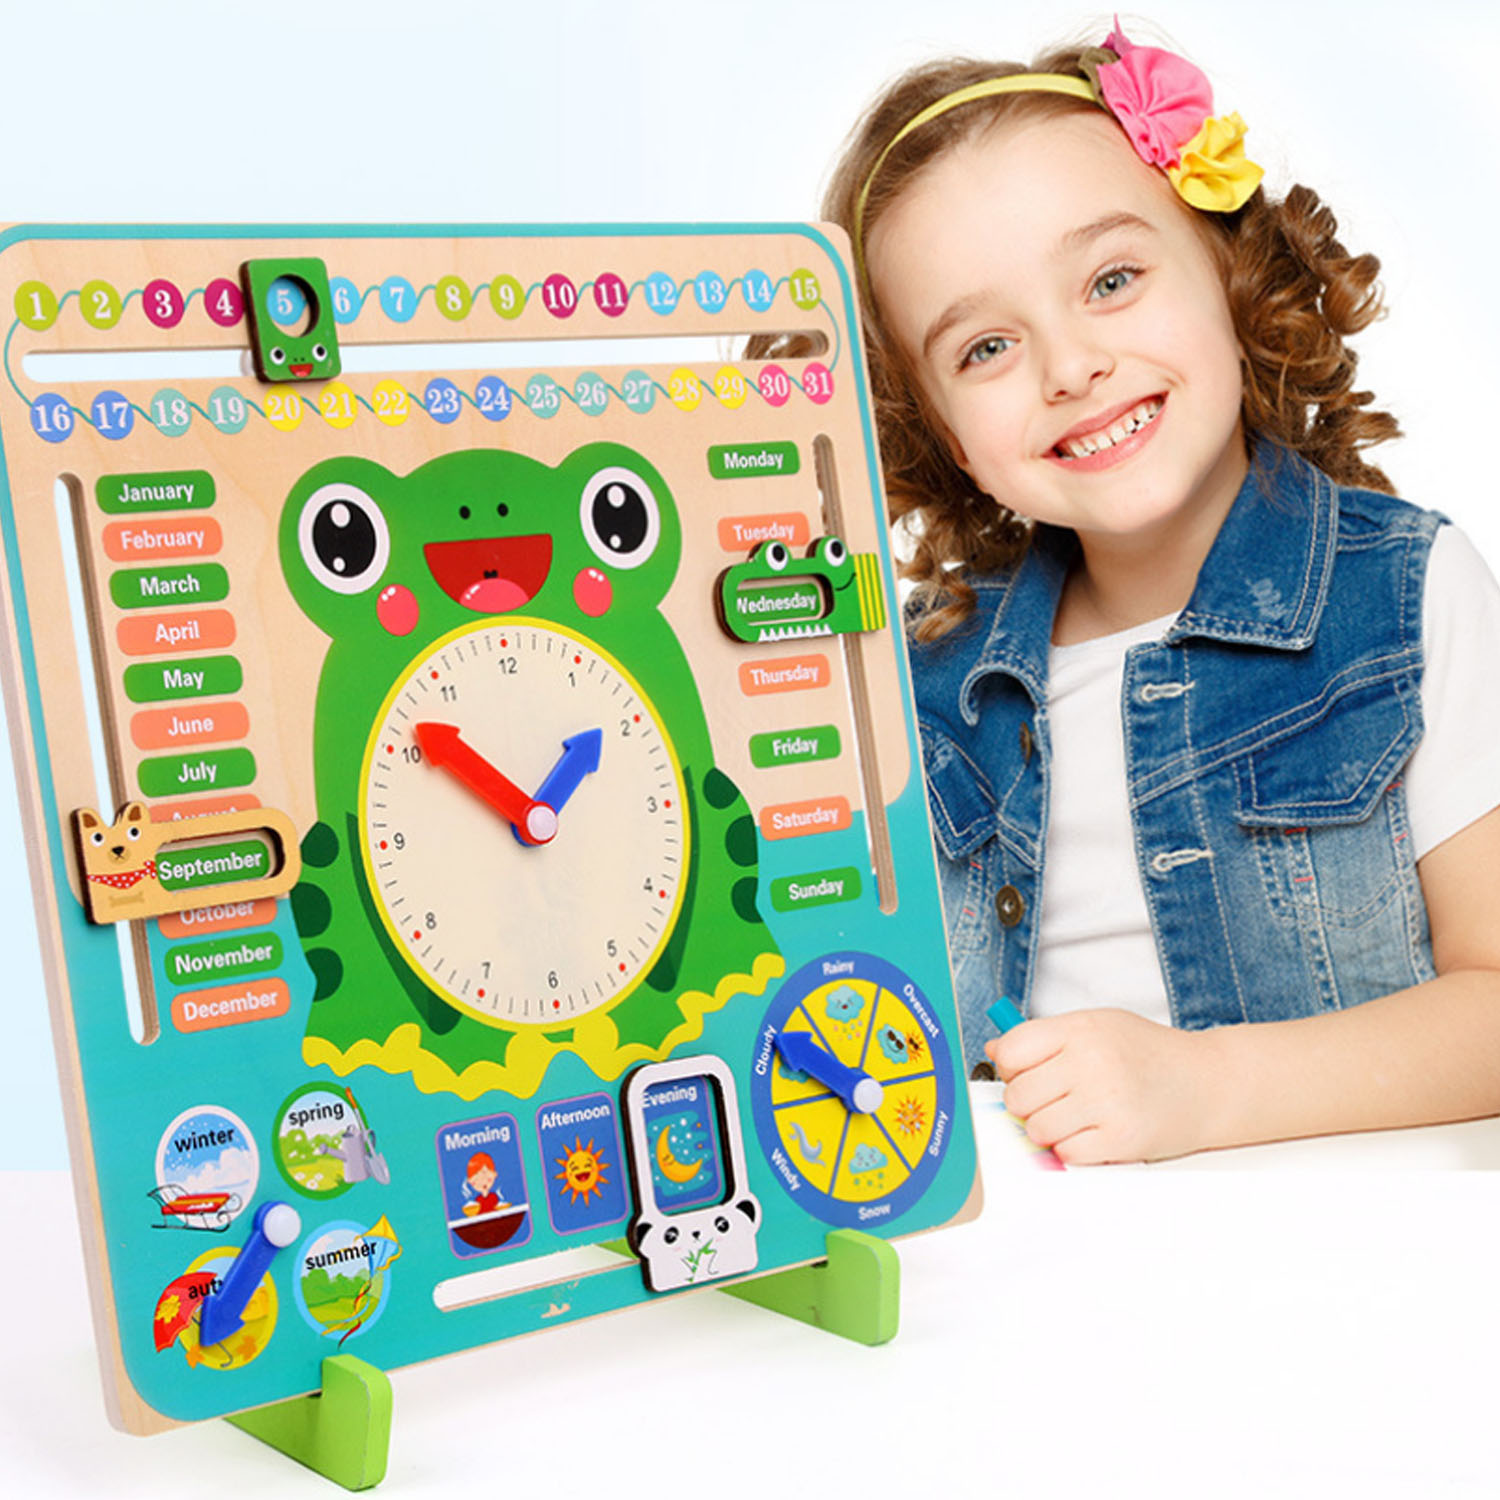 Kids Educational Frog Clock Wooden Toy Time Number Week Months Year Season Weather Puzzle Posters Clock For Preschool Toddlers